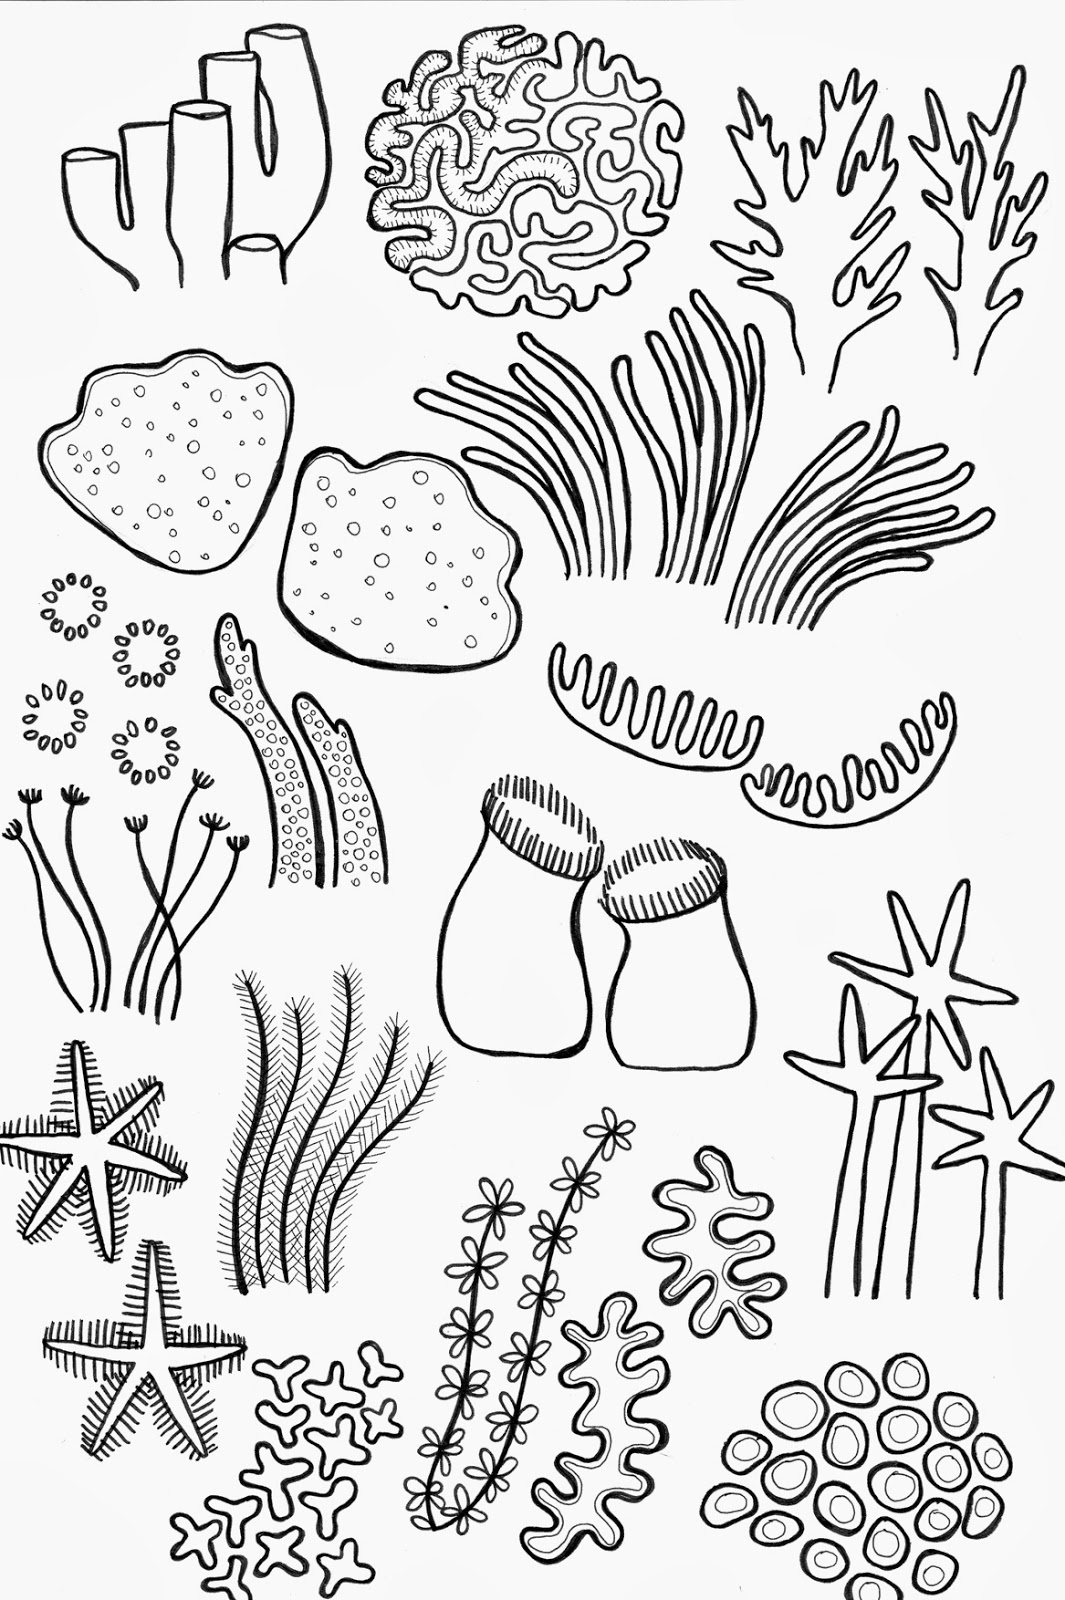 Coral Reef Plants Drawing